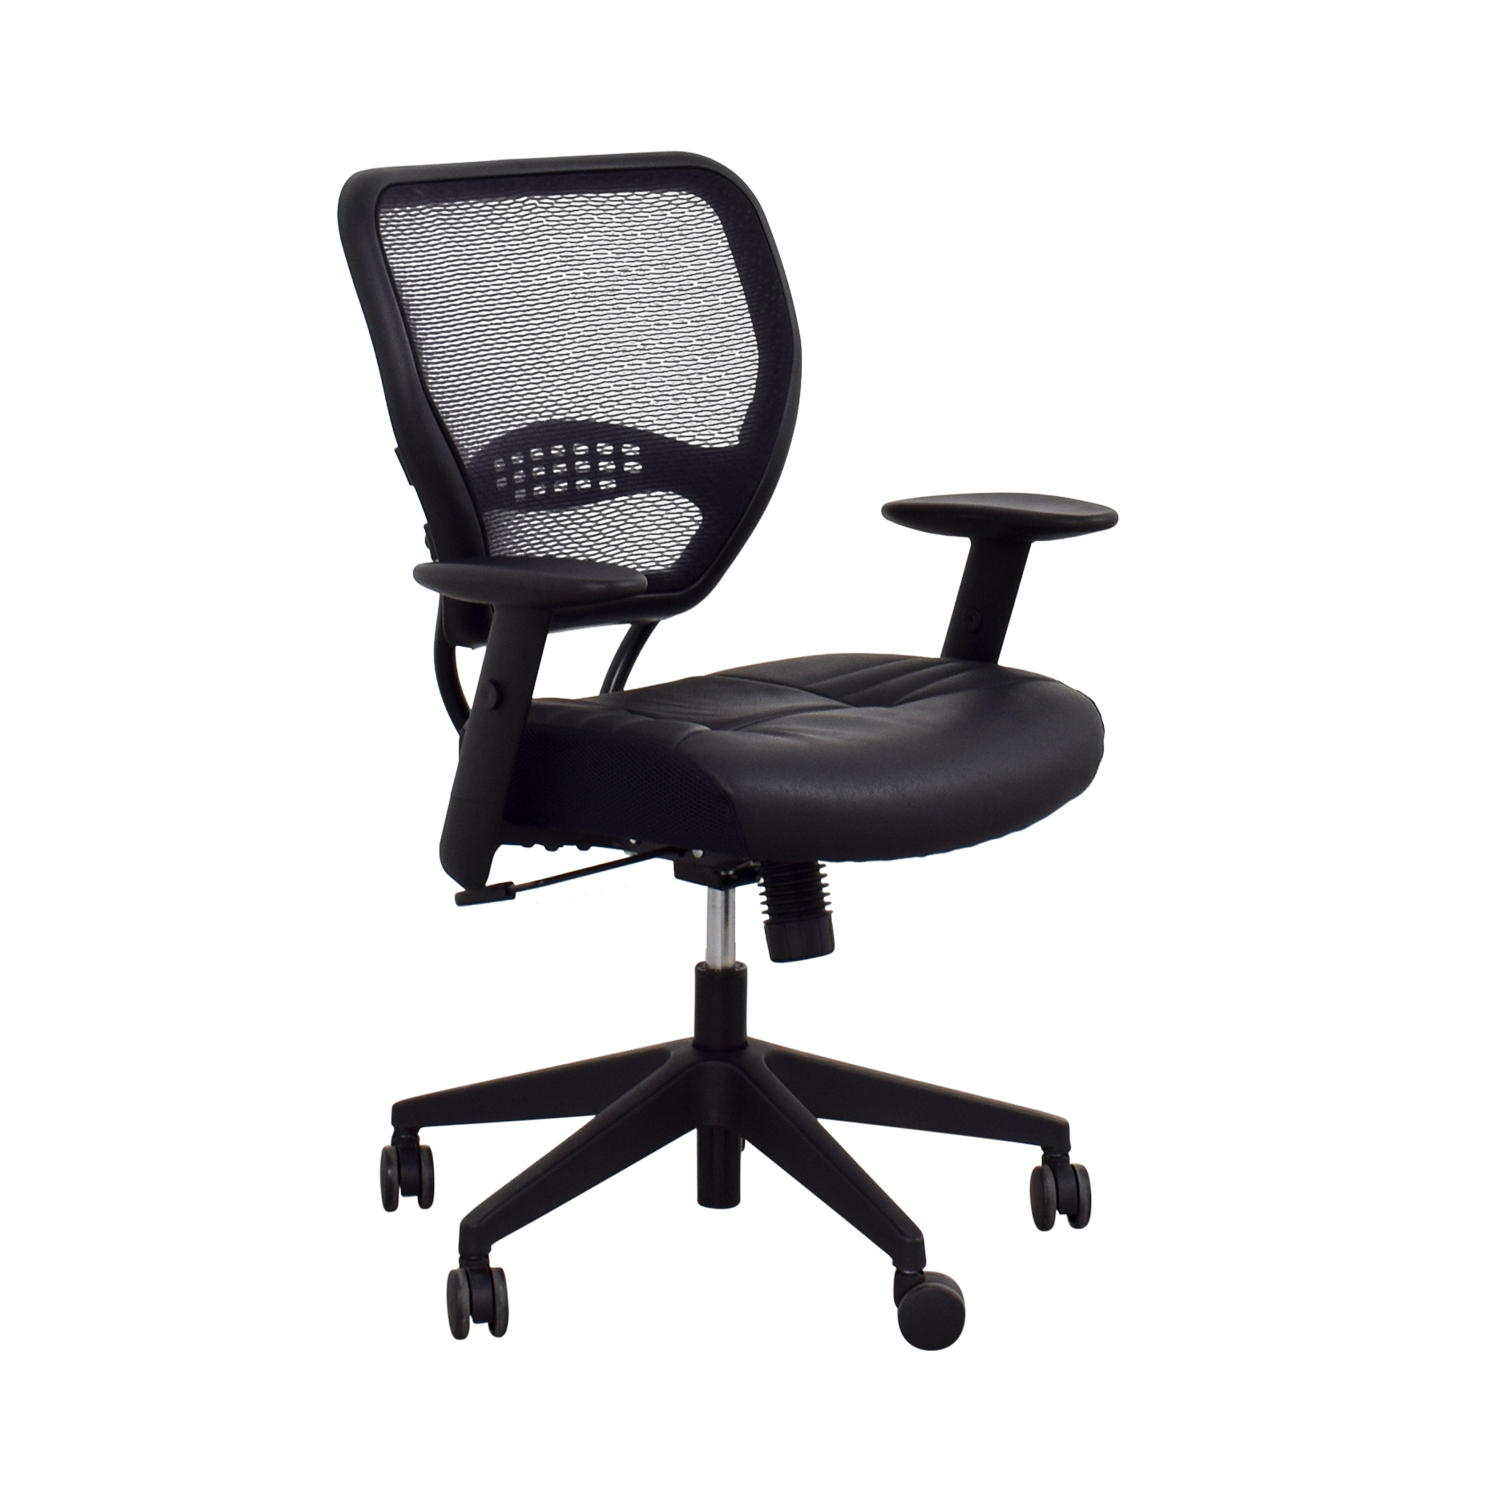 Office Star Black Eco Leather Seat and Air Grid Back Chair / Home Office Chairs